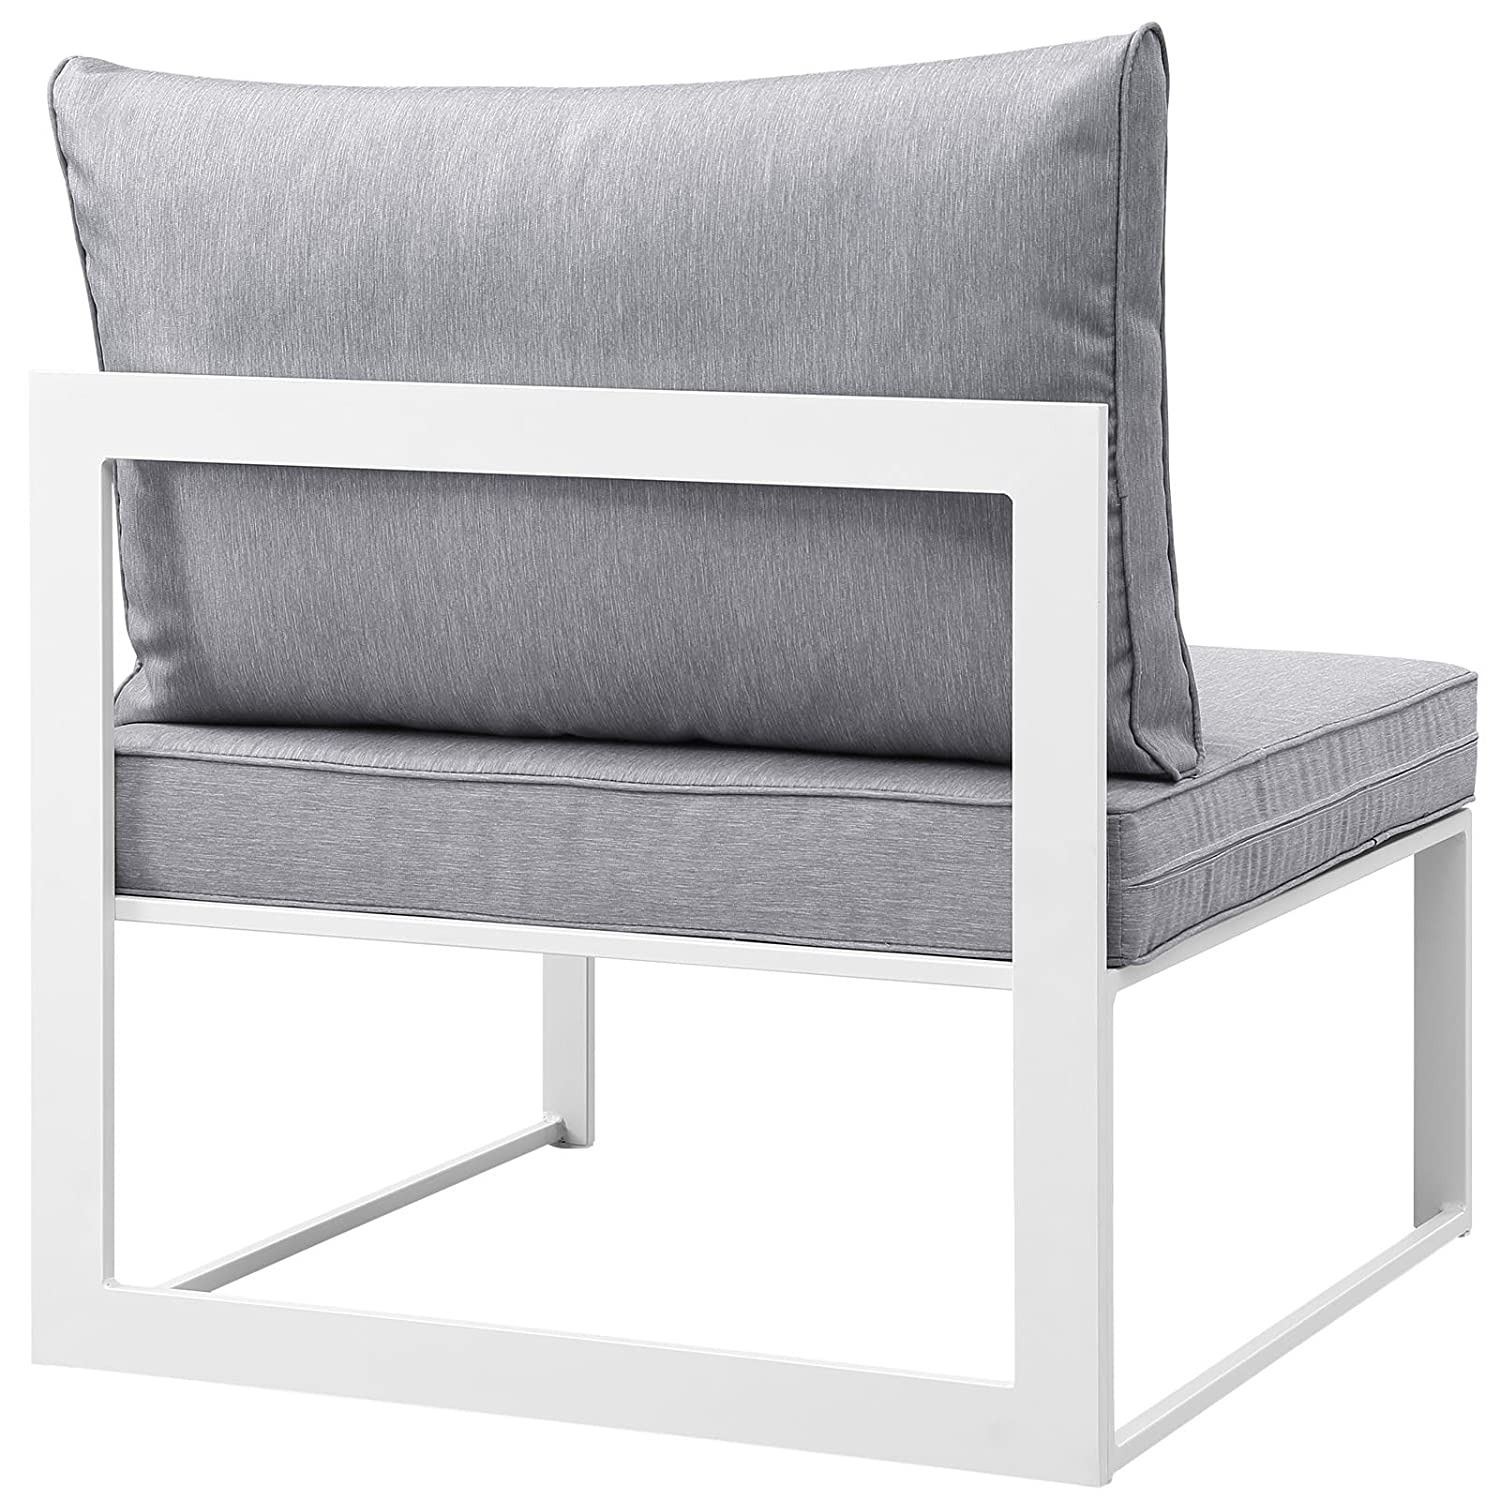 7-Piece Outdoor Sectional In Gray Fabric Cushion - image-4